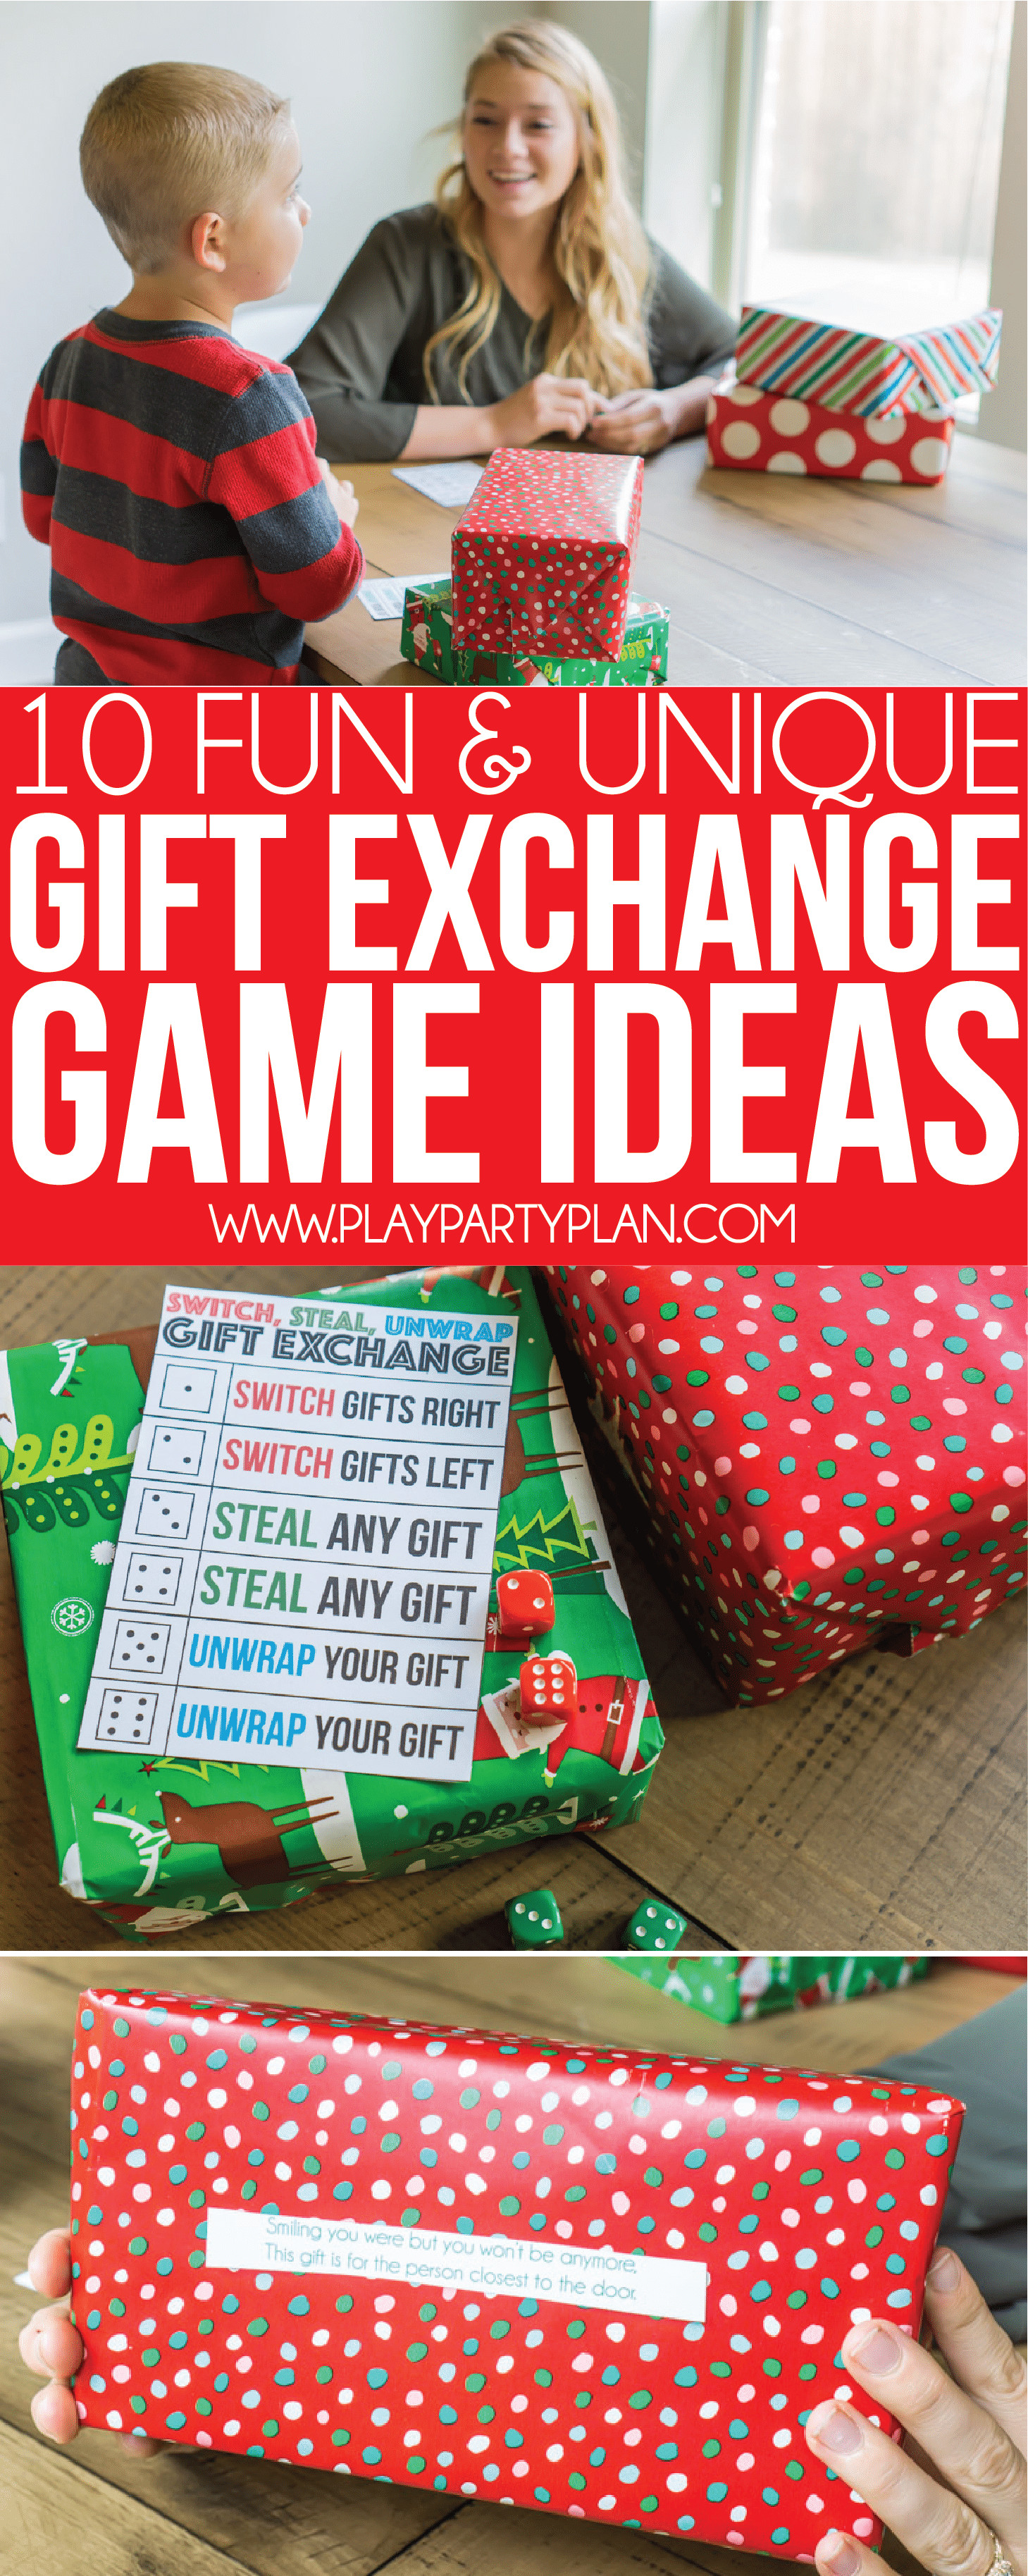 Best ideas about Funny Gift Exchange Ideas . Save or Pin 11 Fun & Creative Gift Exchange Games You Have to Try Now.